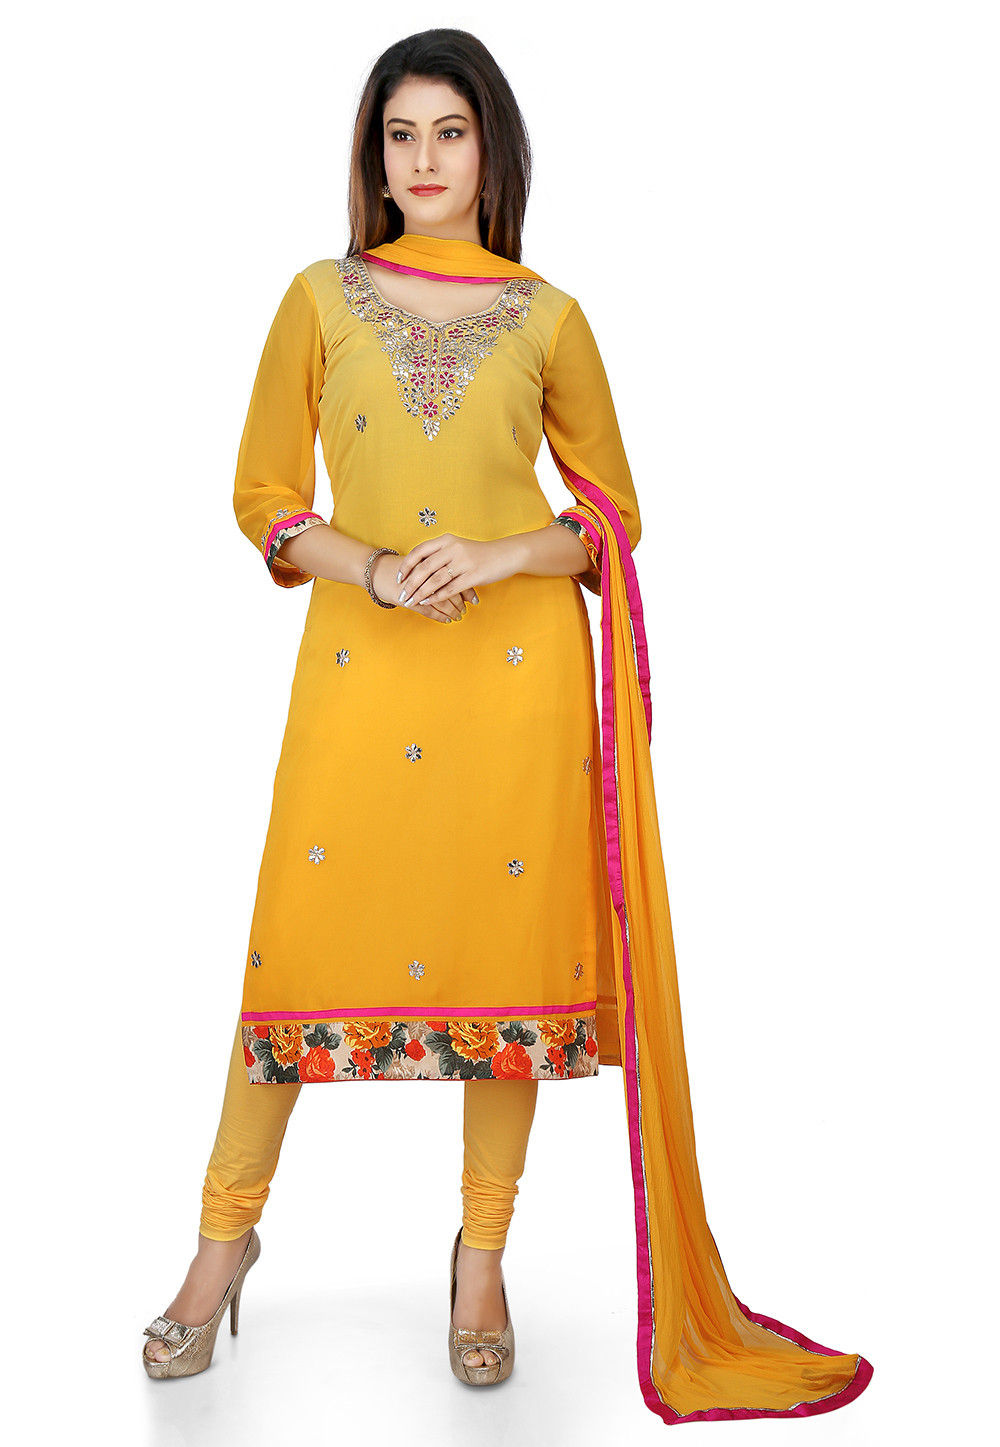 Embroidered Georgette Straight Suit in Yellow Ombre